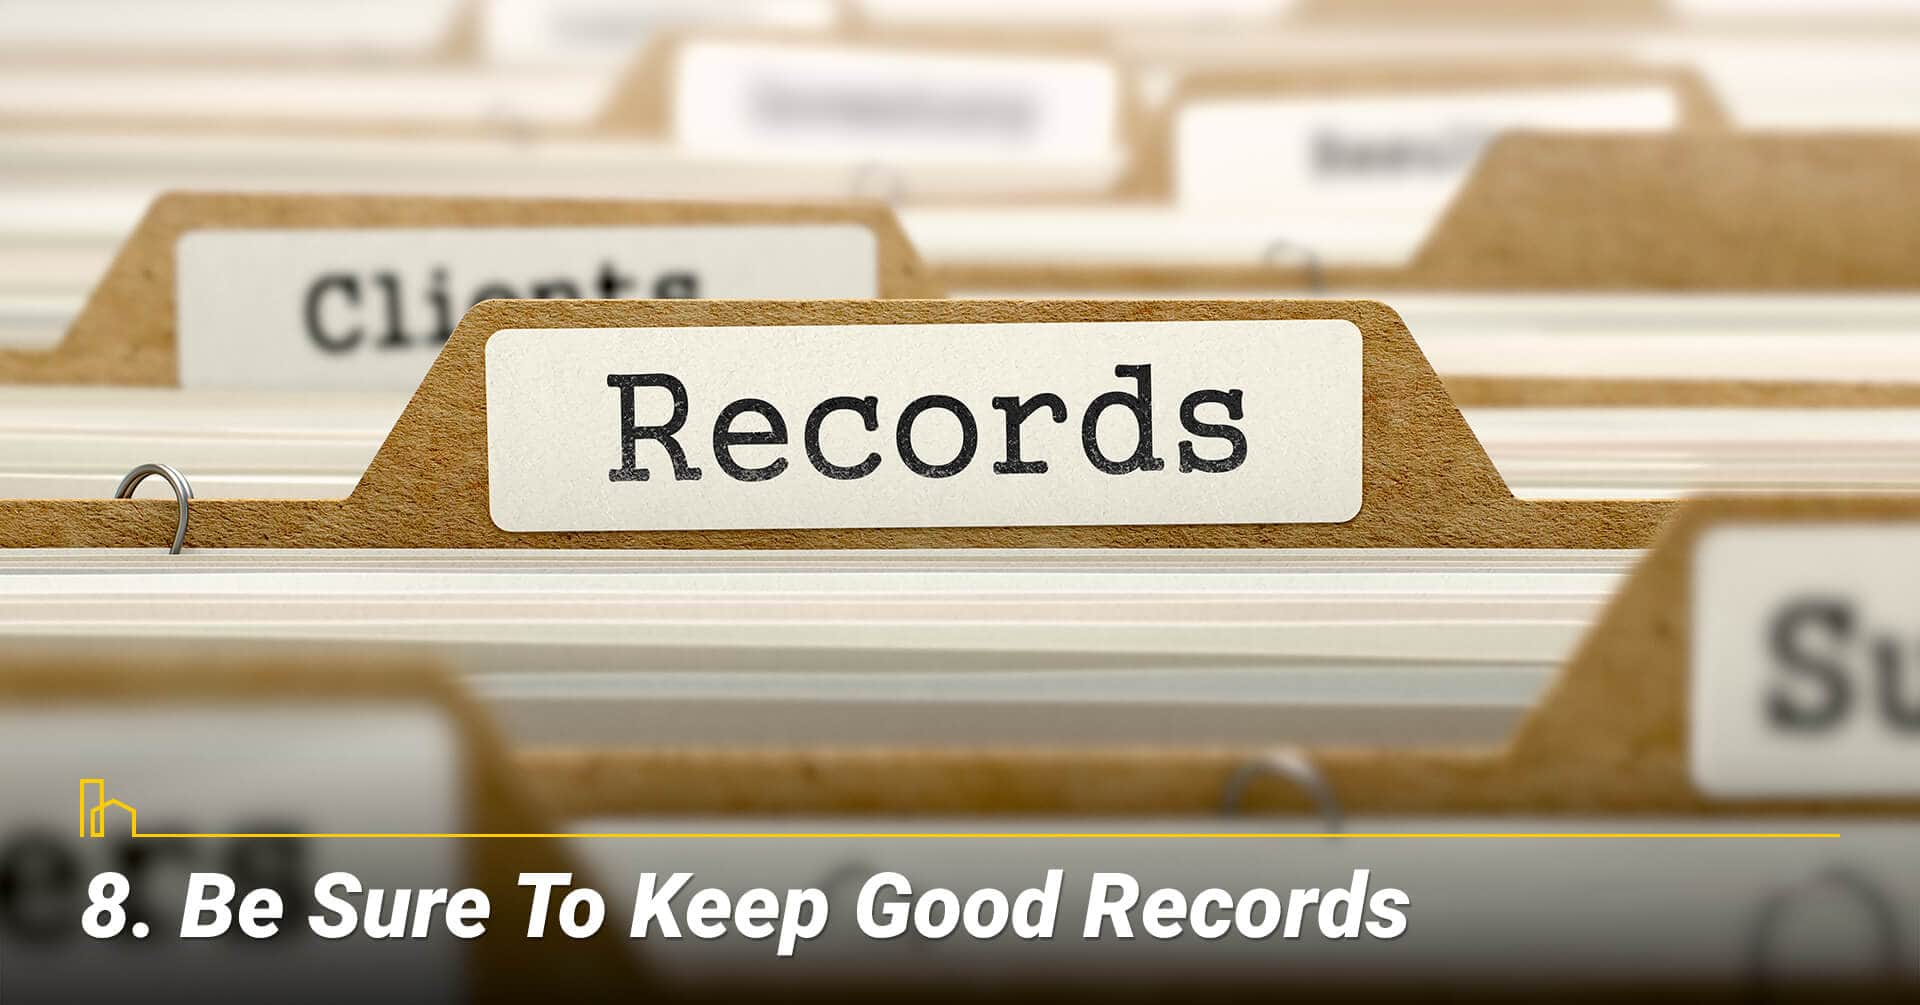 Be Sure To Keep Good Records, keep all related documents